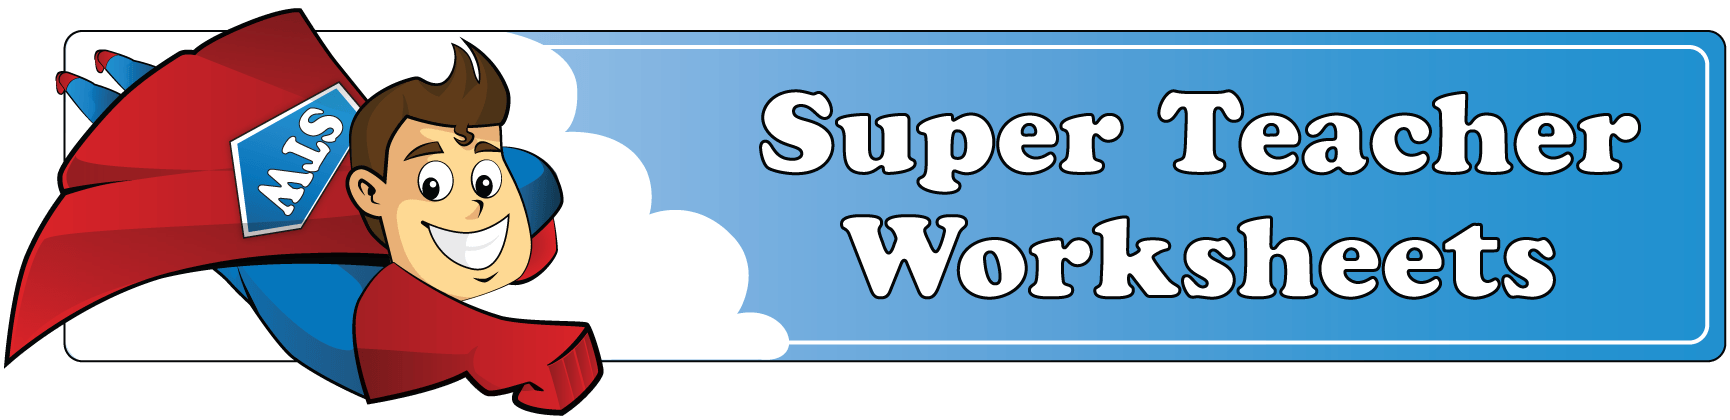 Log In to Super Teacher Worksheets – Super Teacher Worksheets Password